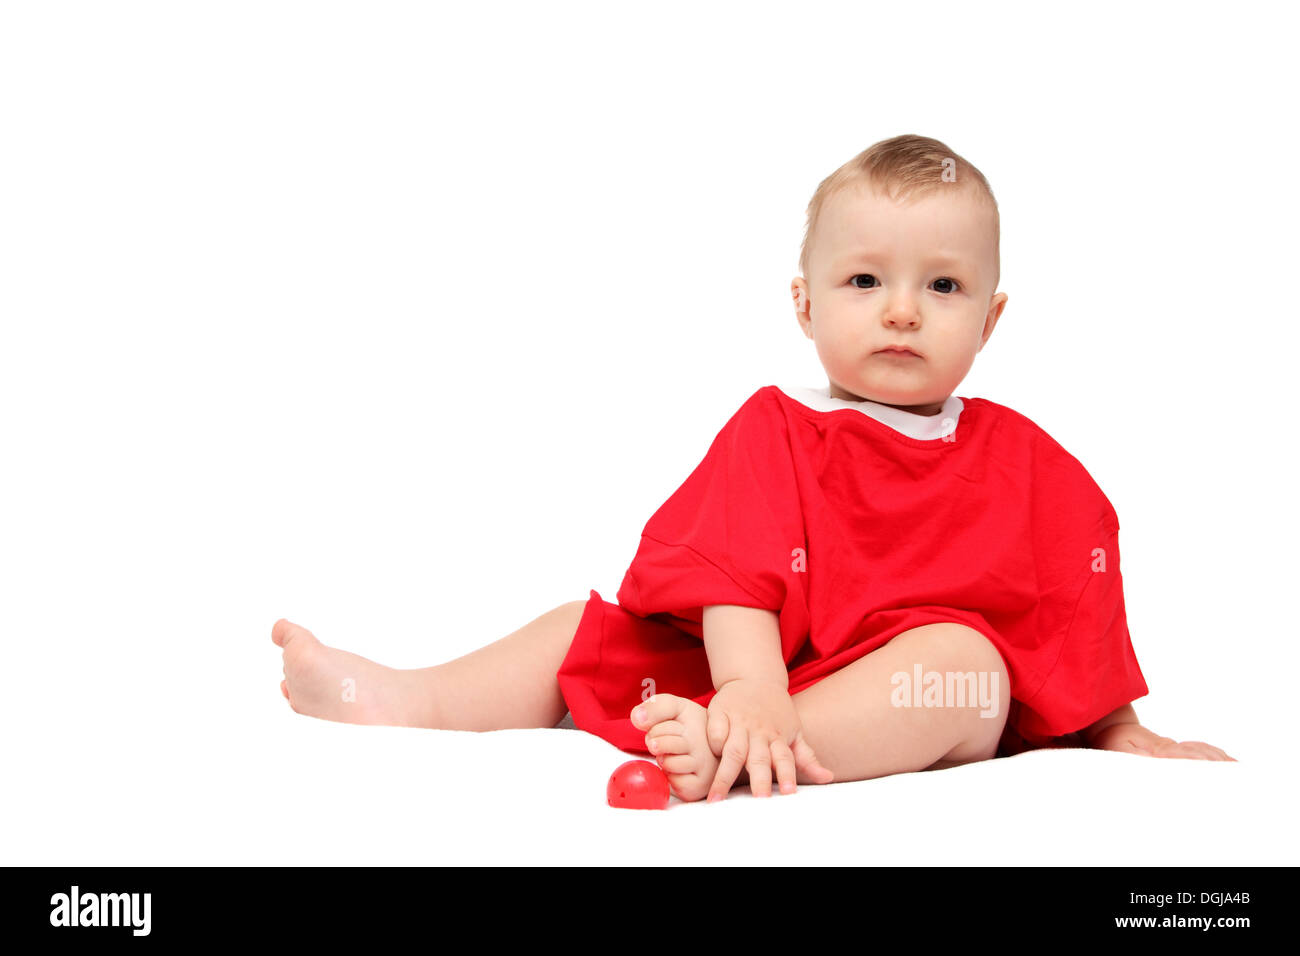 Child in red - Stock Image